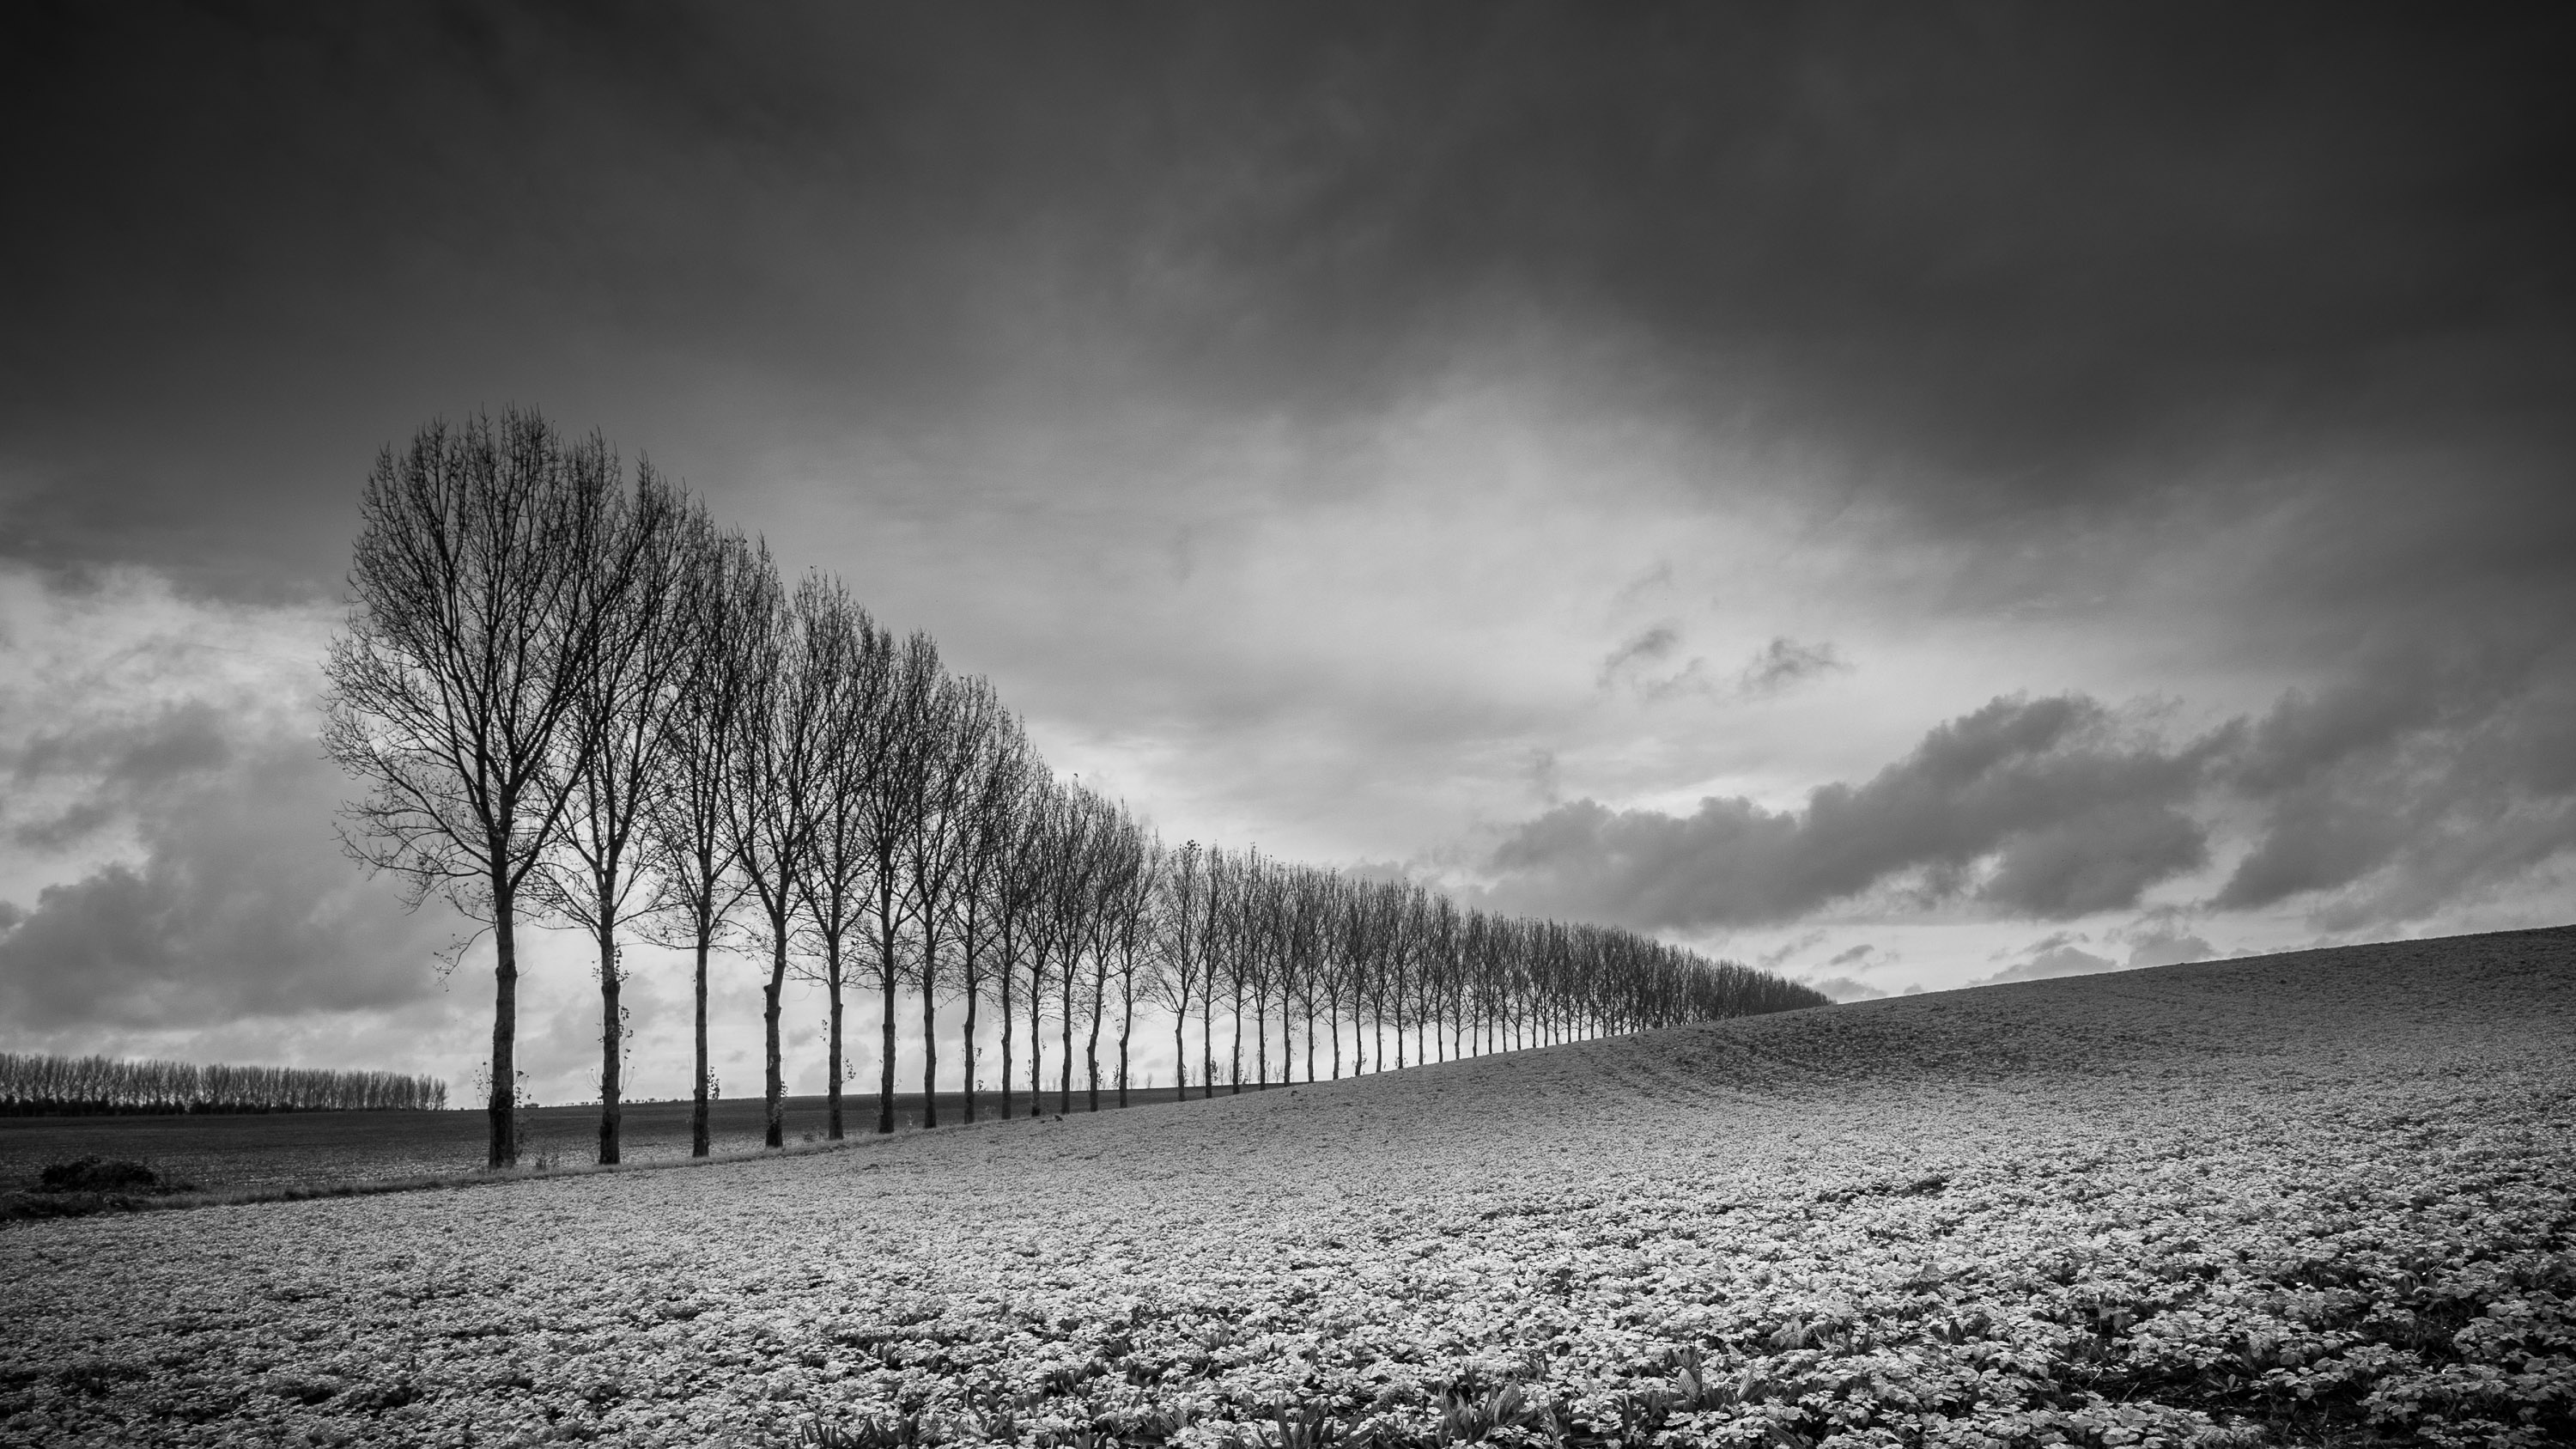 How To Master Black And White Photography